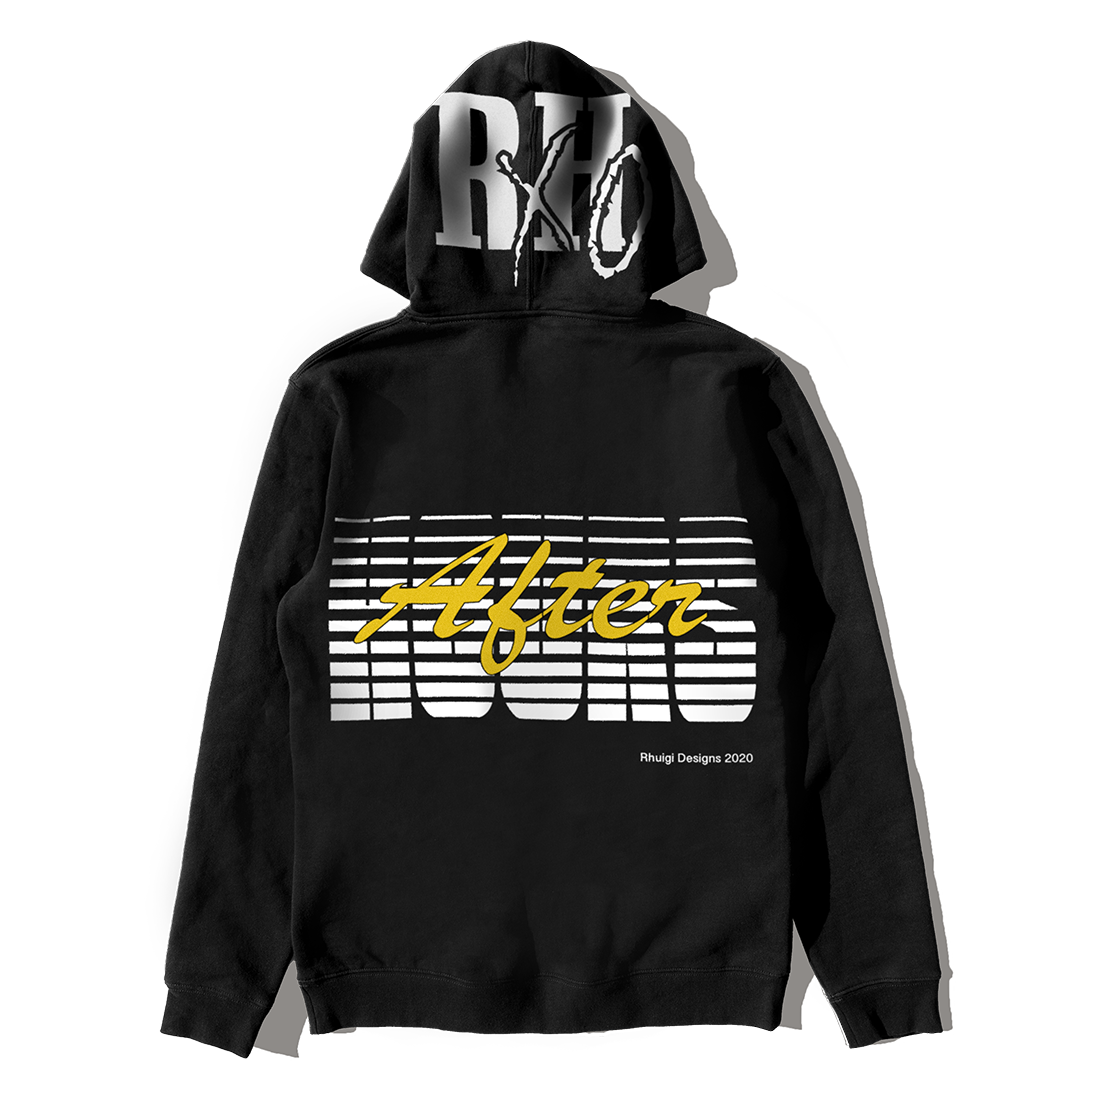 The Weeknd: RHUIGI AFTER HOURS PARADISE PULLOVER HOOD